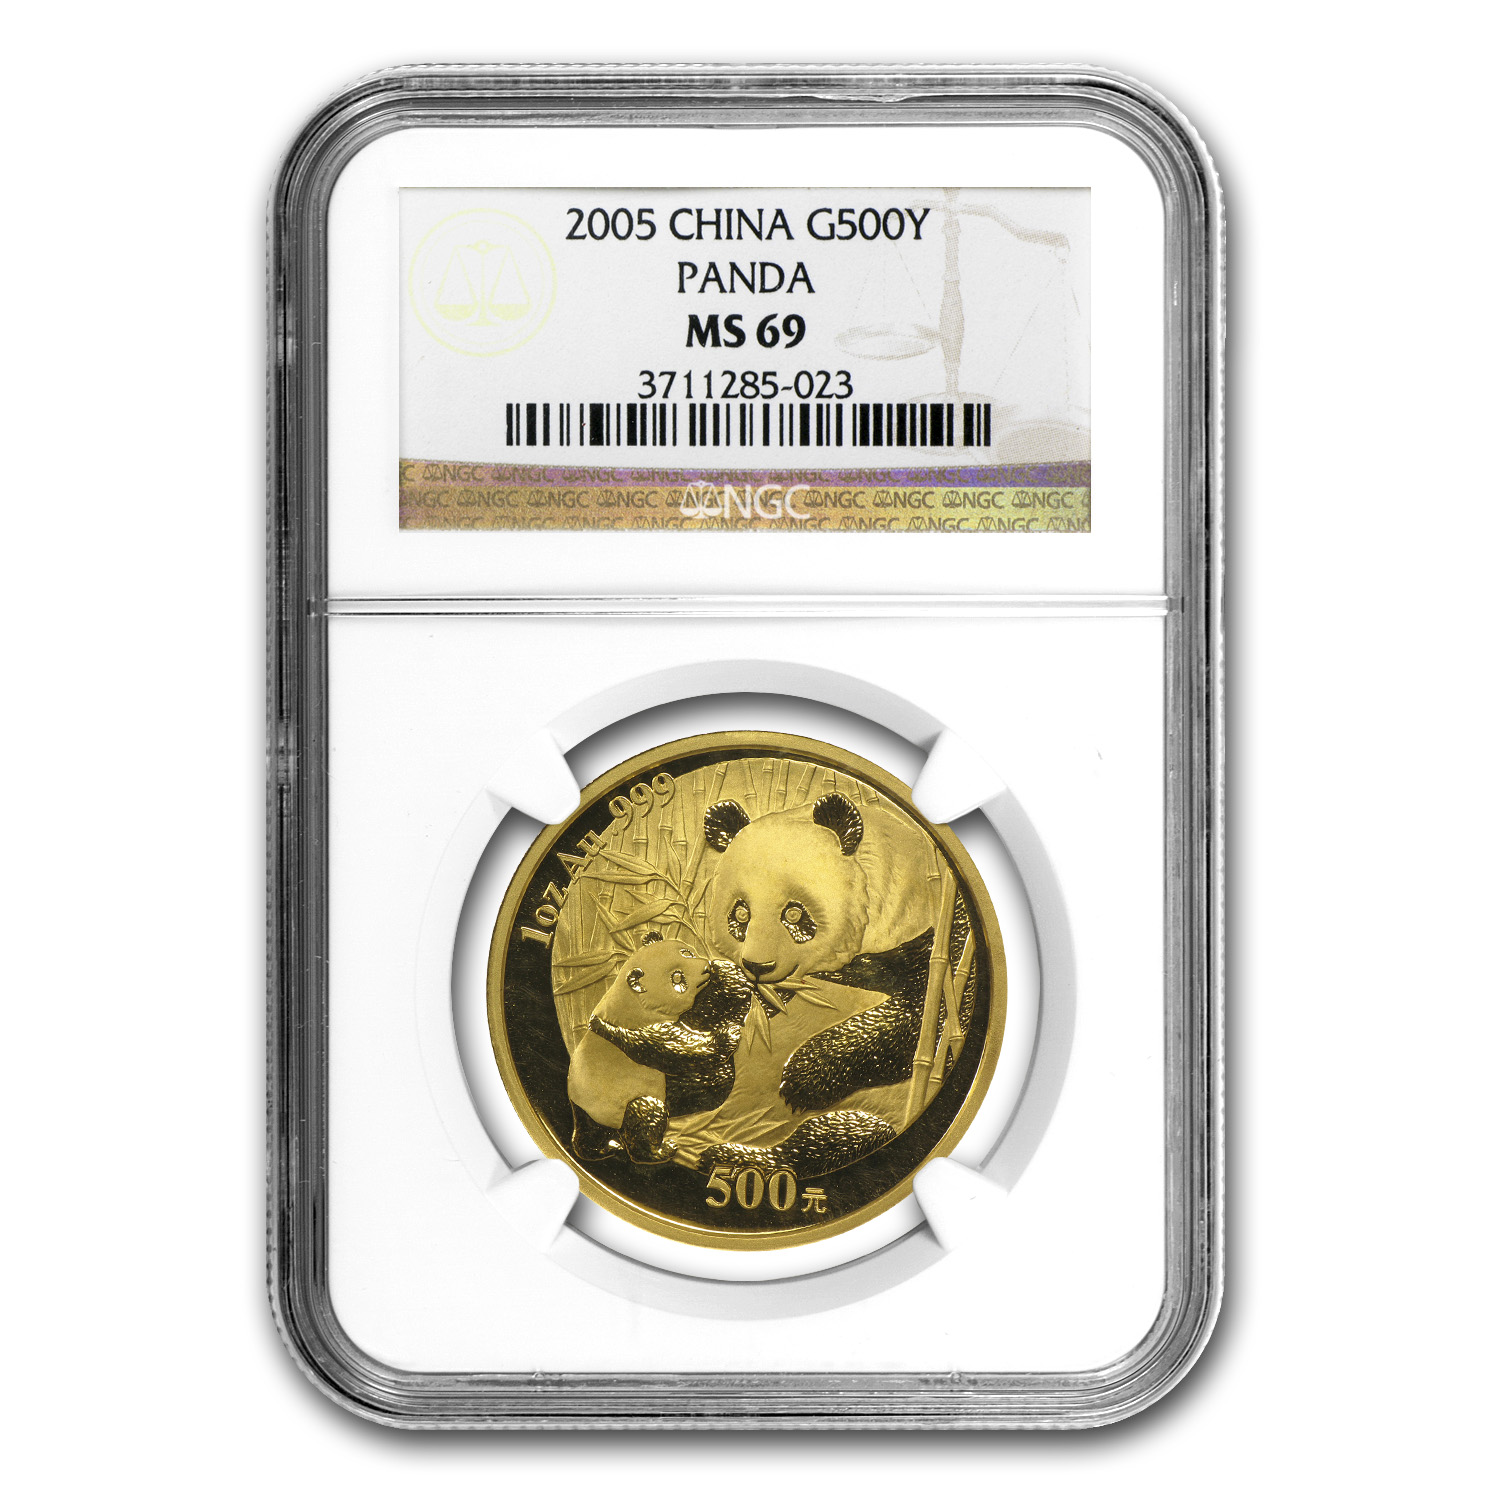 2005 China 1 oz Gold Panda MS-69 NGC